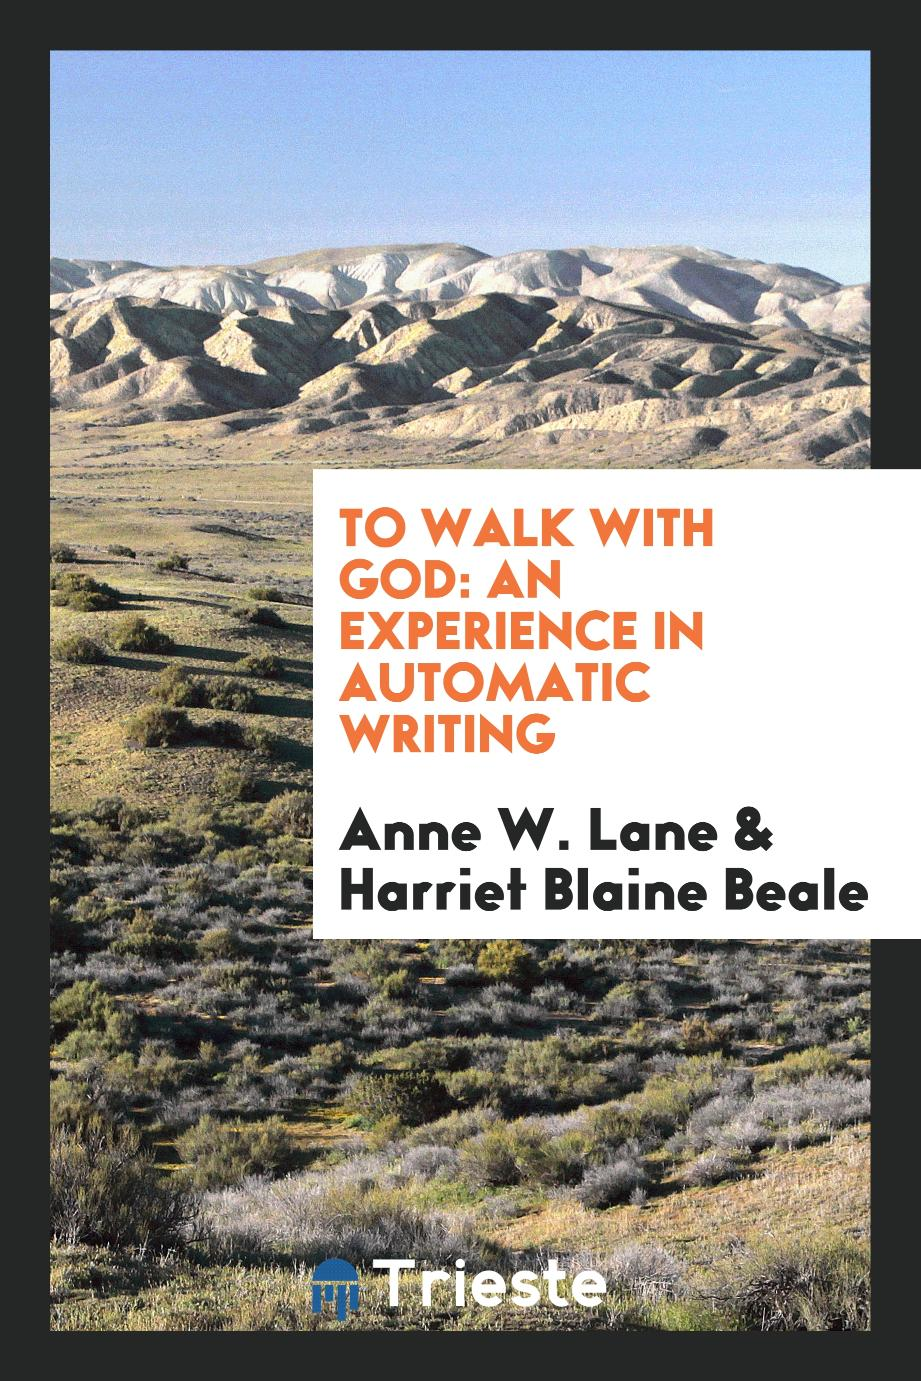 To Walk with God: An Experience in Automatic Writing